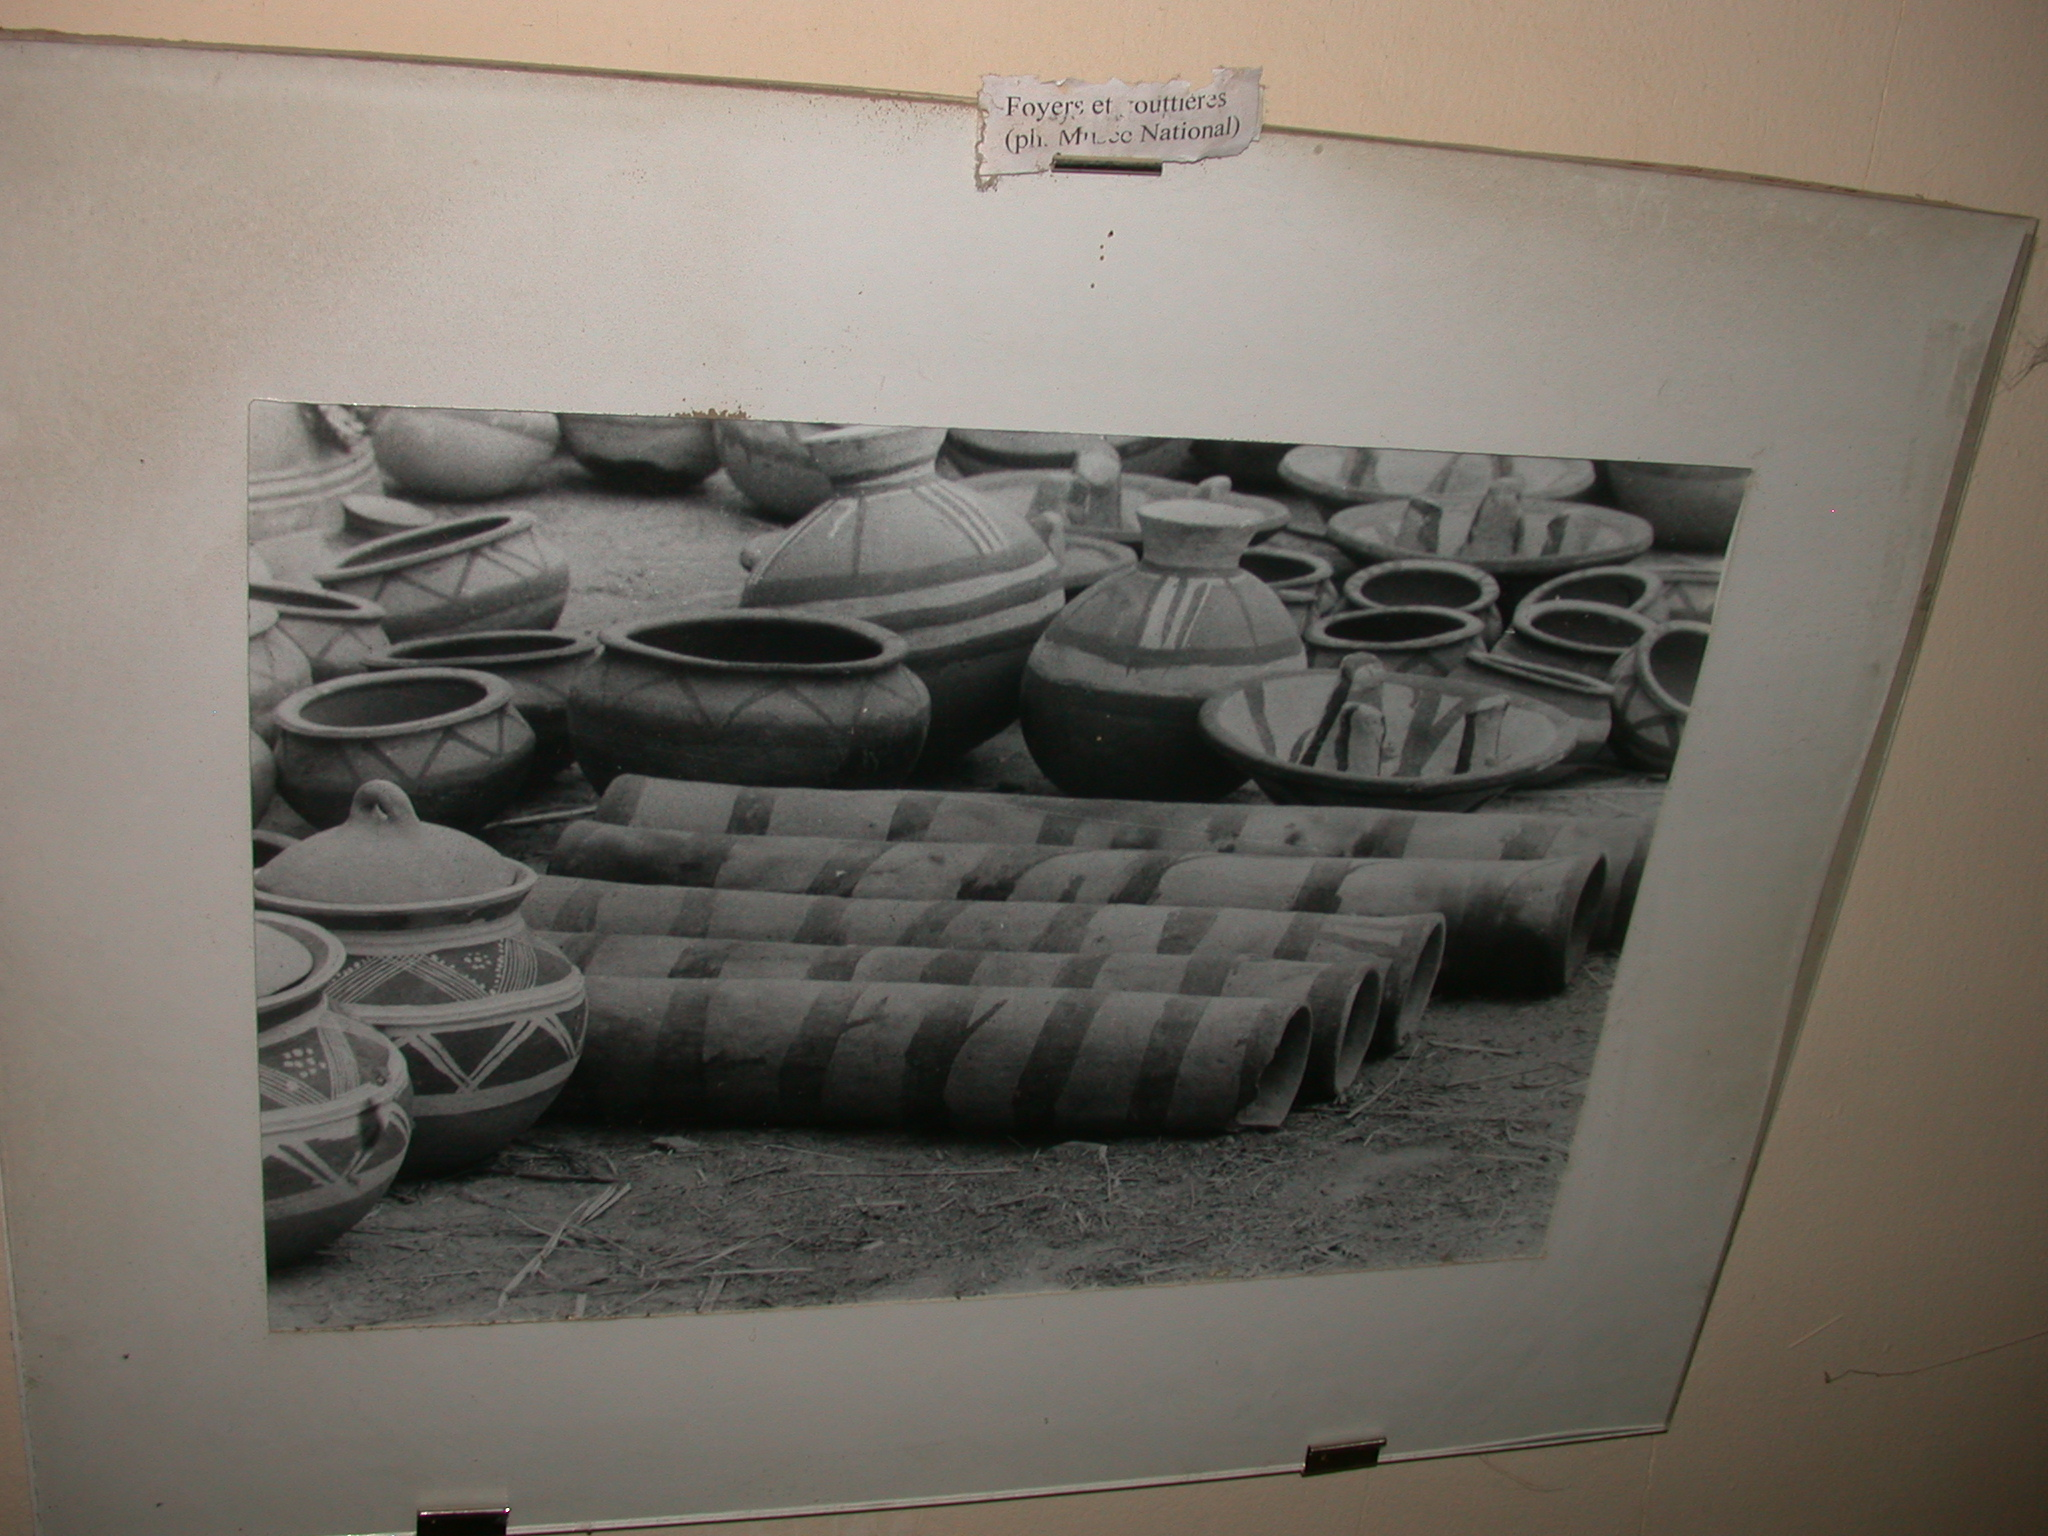 Photo Labeled Hearths and Gutters, Timbuktu Ethnological Museum, Timbuktu, Mali